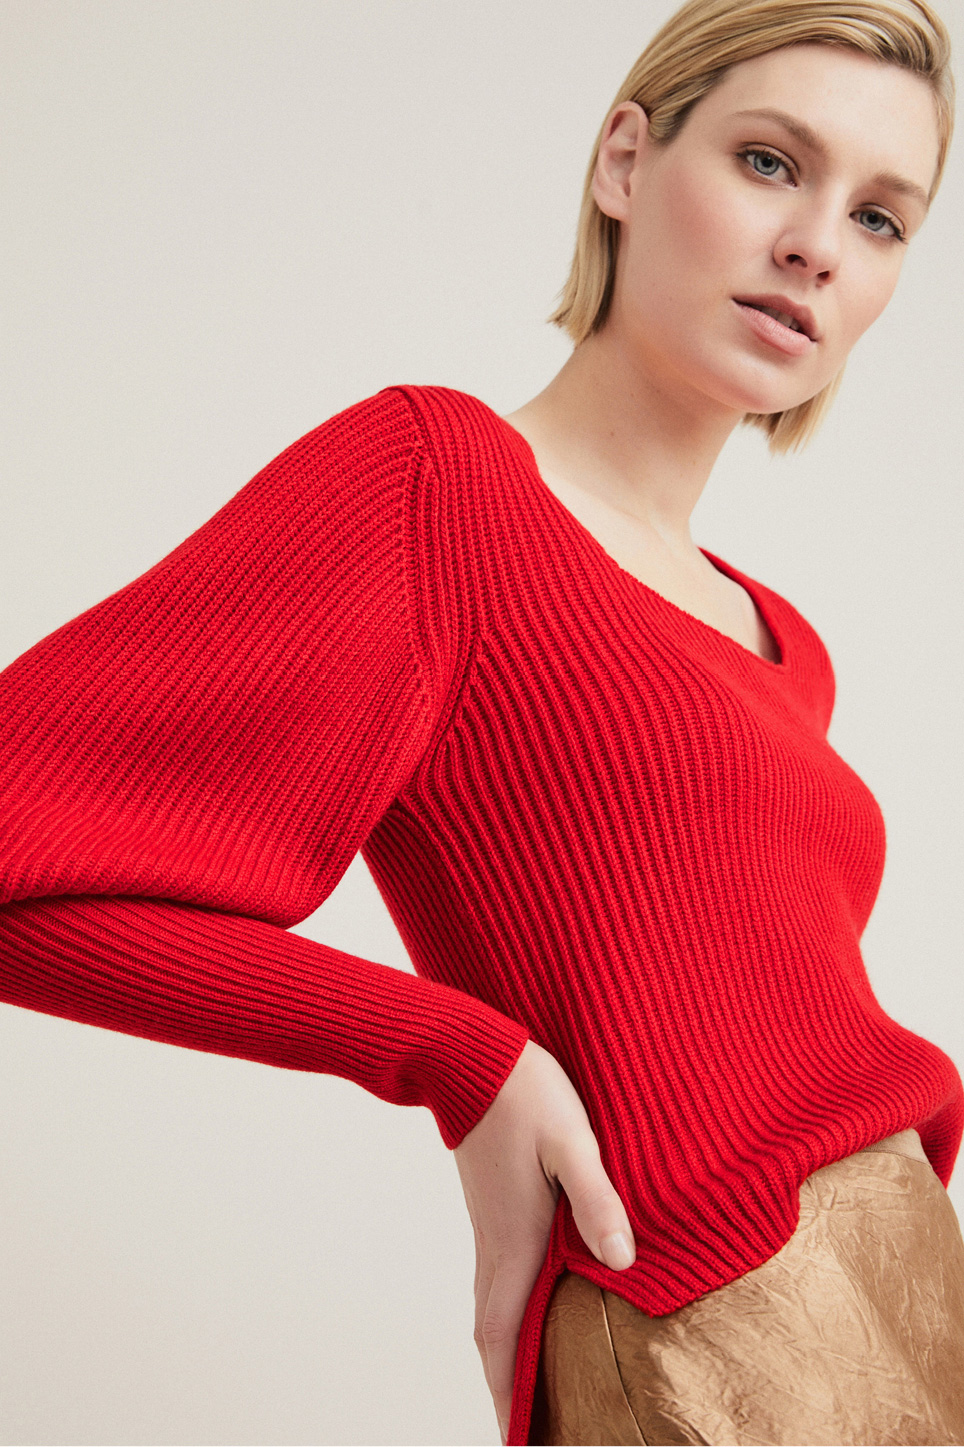 Woman wearing the Square Full Sleeve Knit